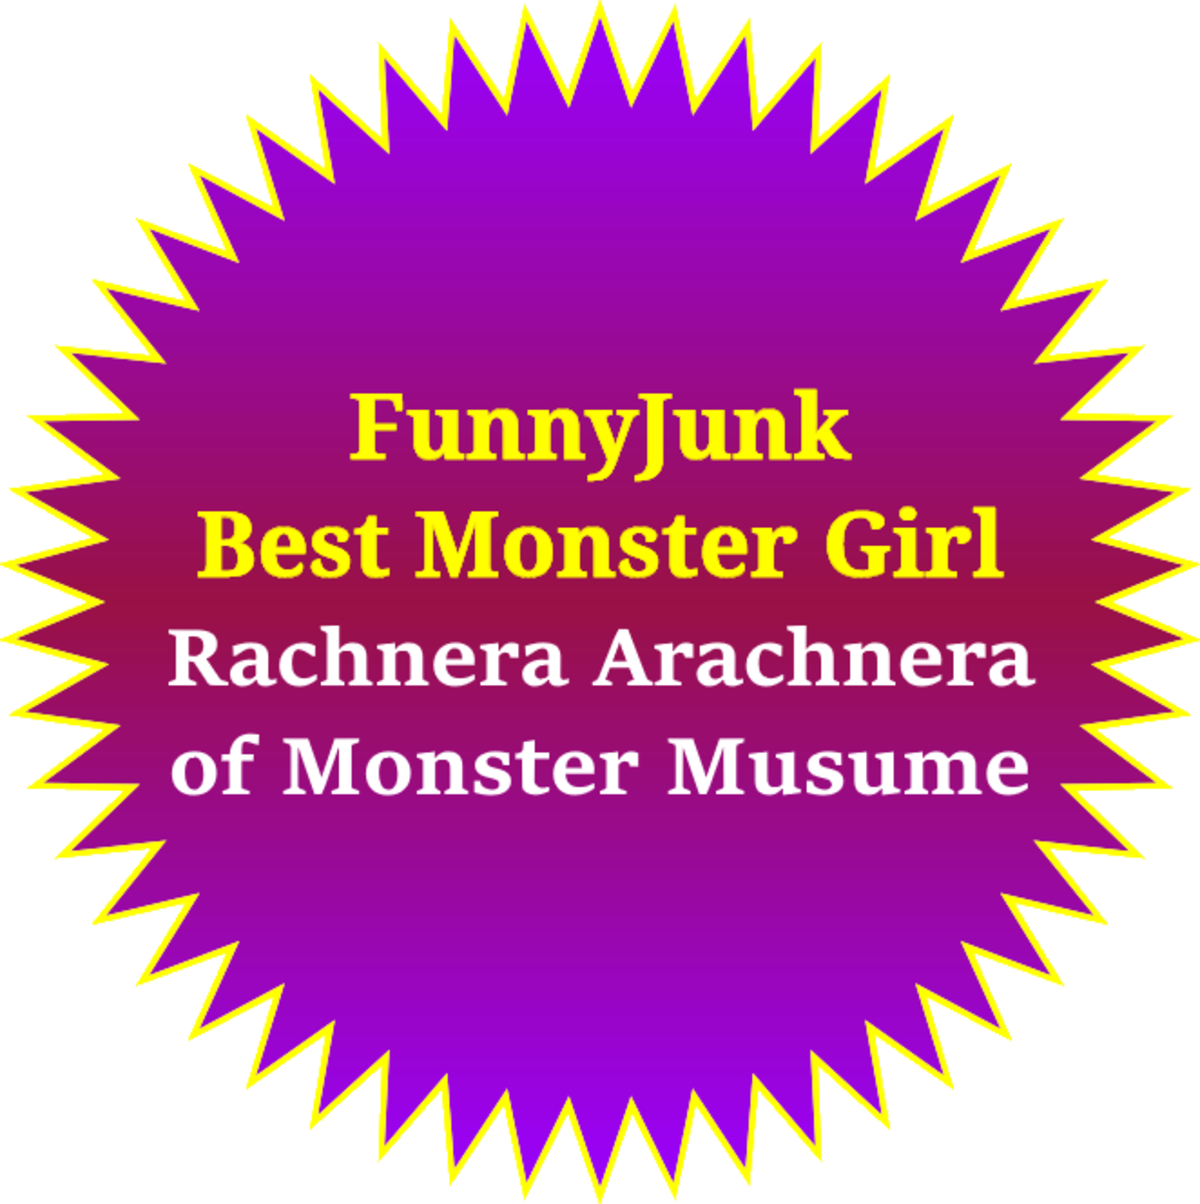 "FunnyJunk Best Monster Girl Contest Compilation (1/2). Part 2: . jrack lli/ Girlaust /liu, GirlFunnyjunk I limits/ ll:: Big GirlPeurto' B e st rd Girl "" r.. rio"